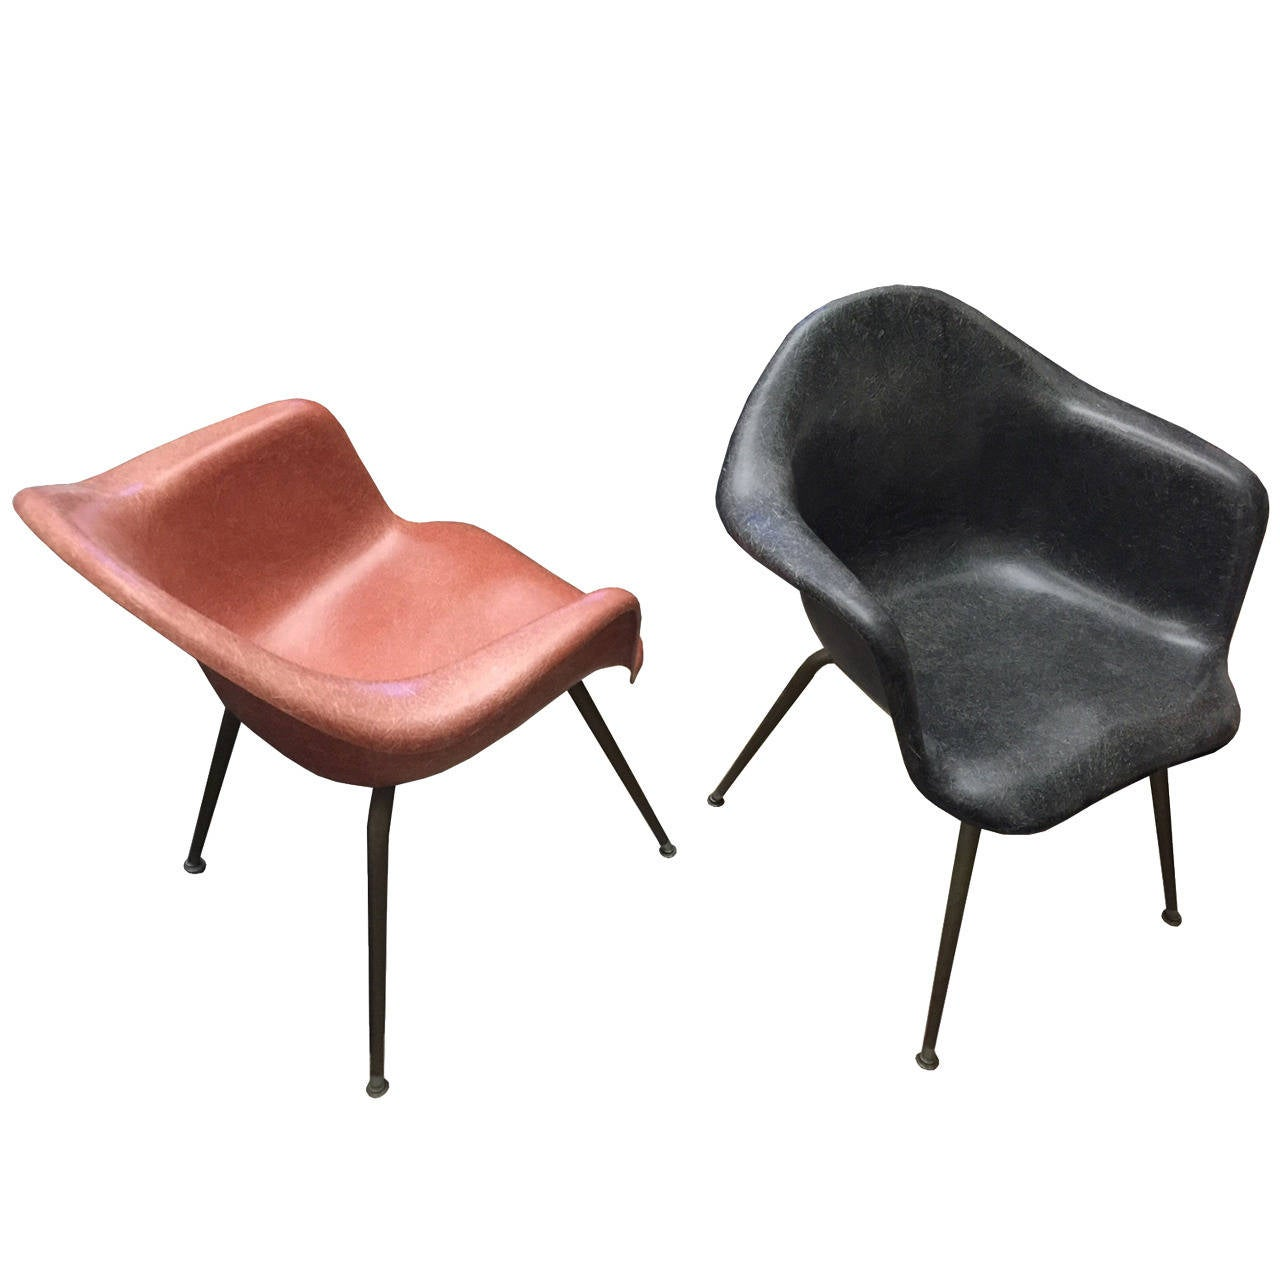 mid century vintage eames era fiberglass shell arm chairs by